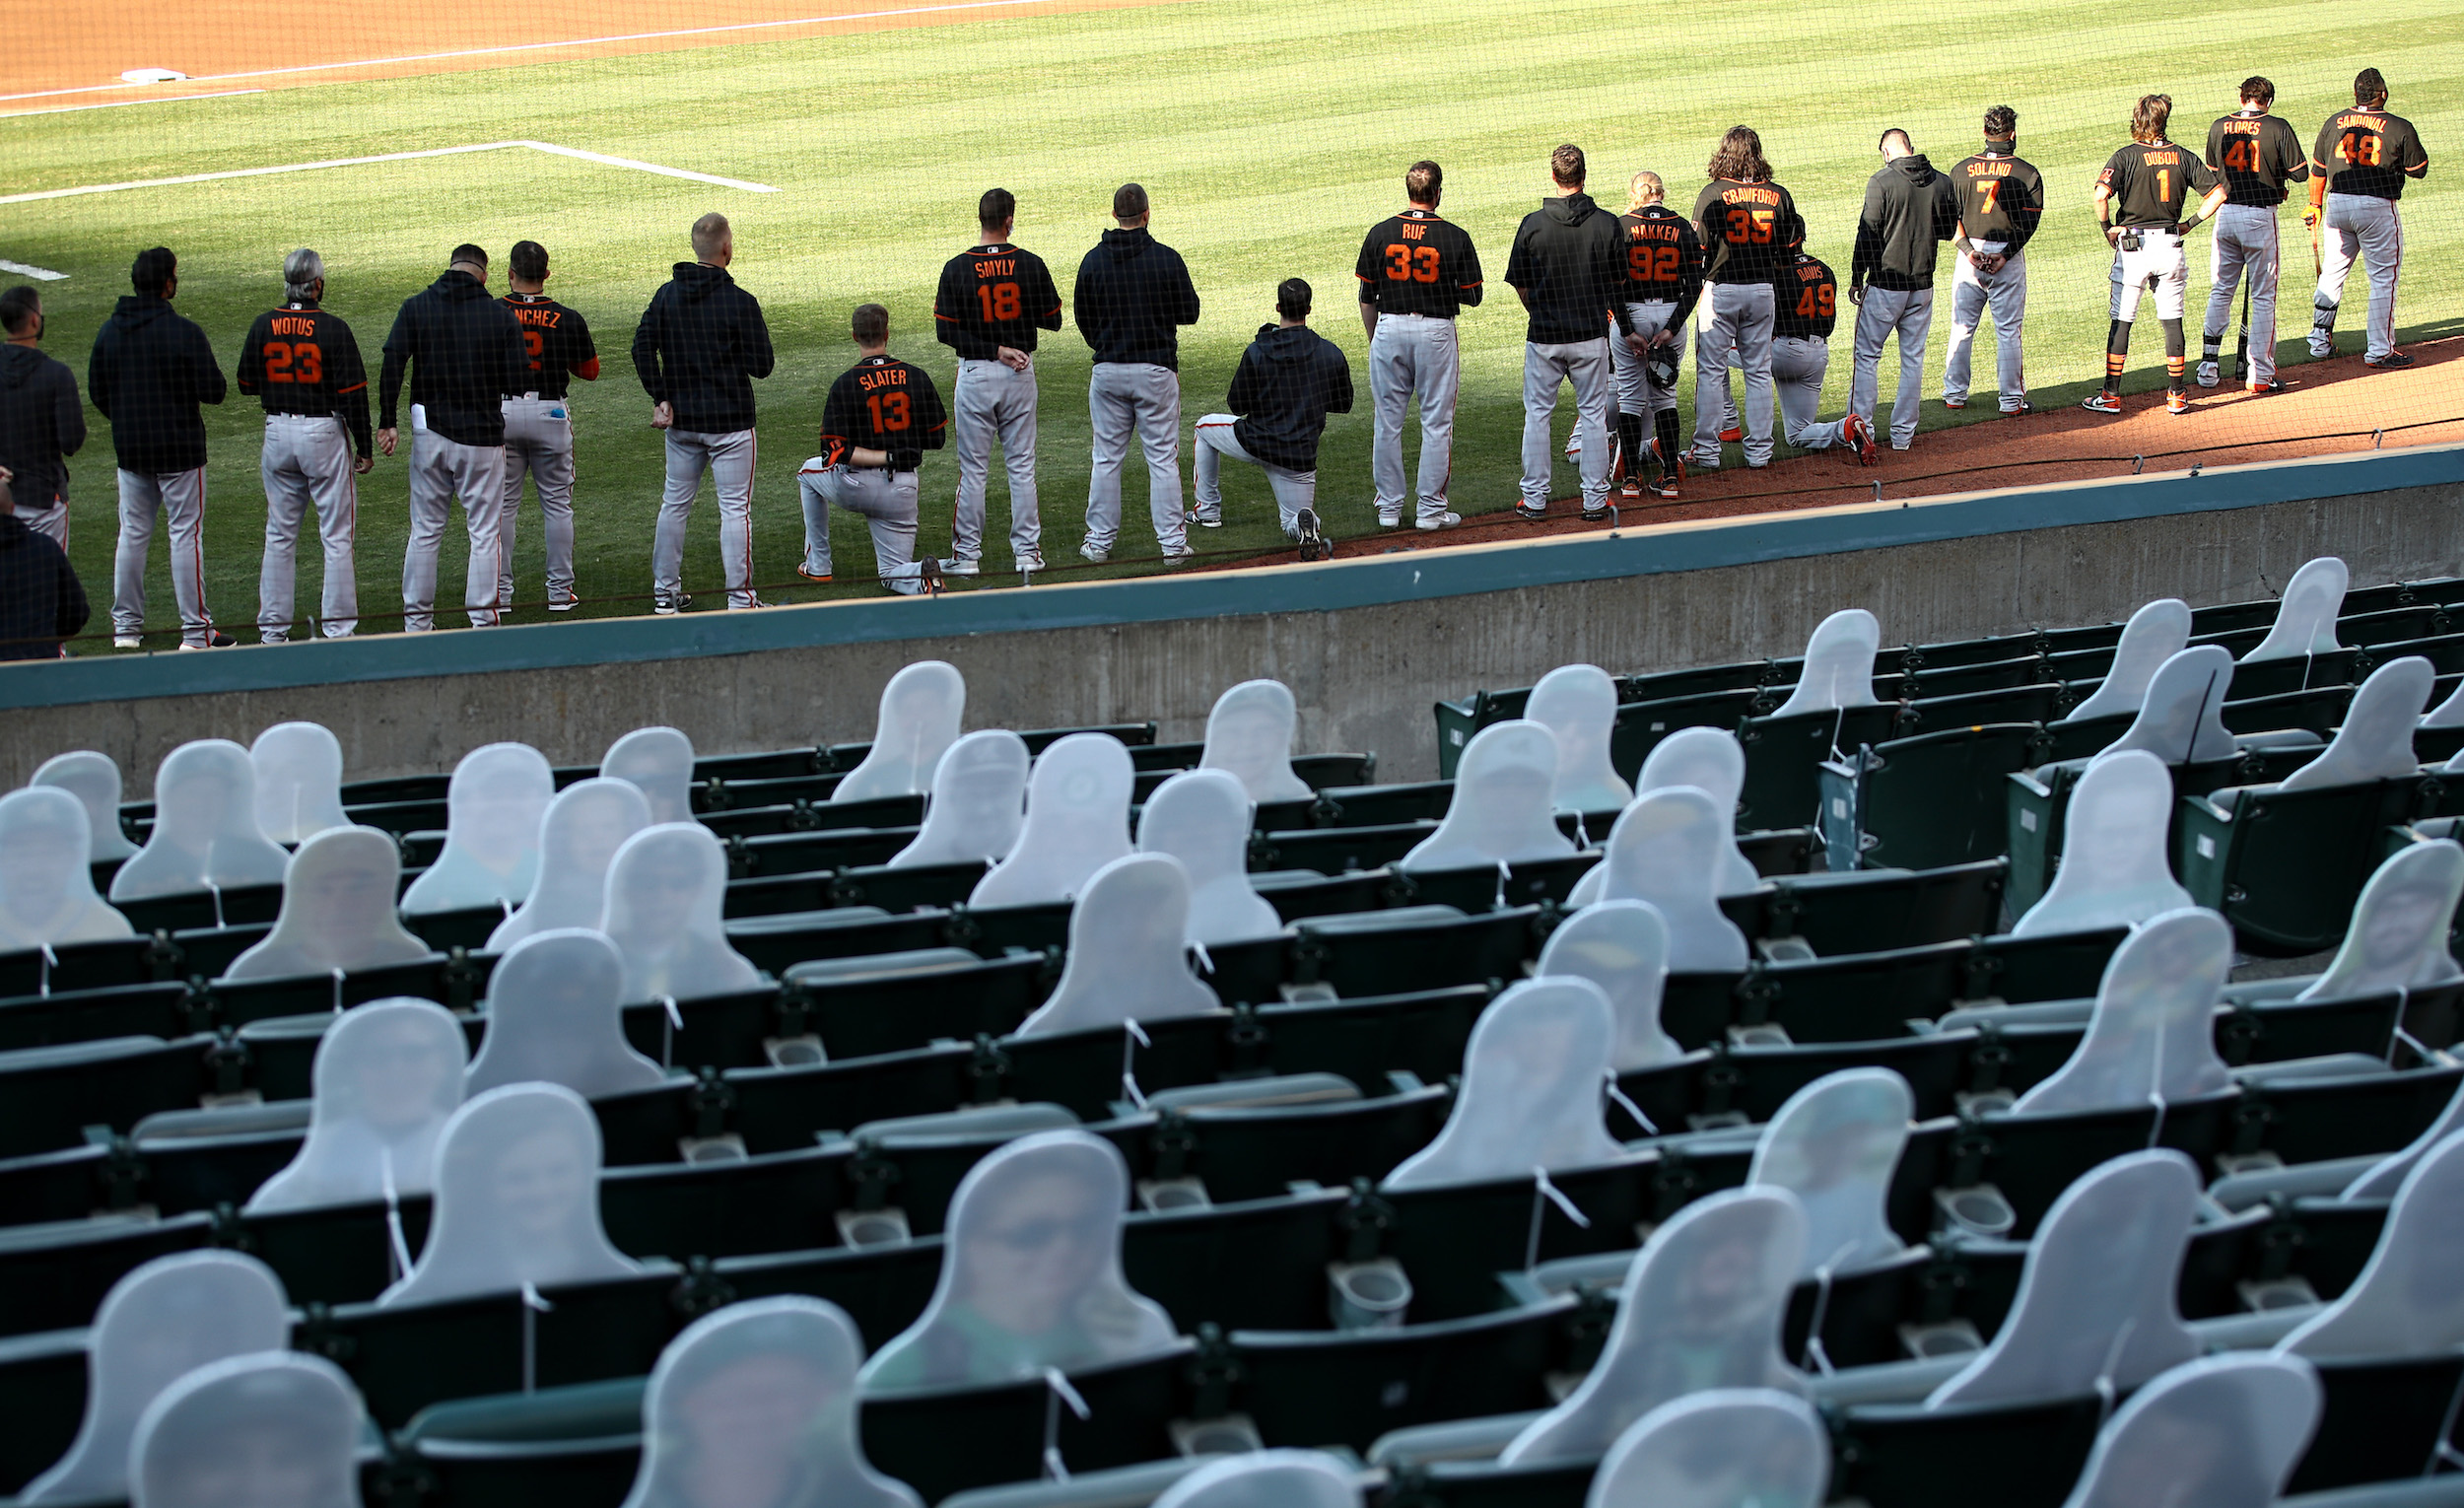 Aubrey Huff and Donald Trump Are Still Missing the Point of the San Francisco Giants Kneeling for the National Anthem